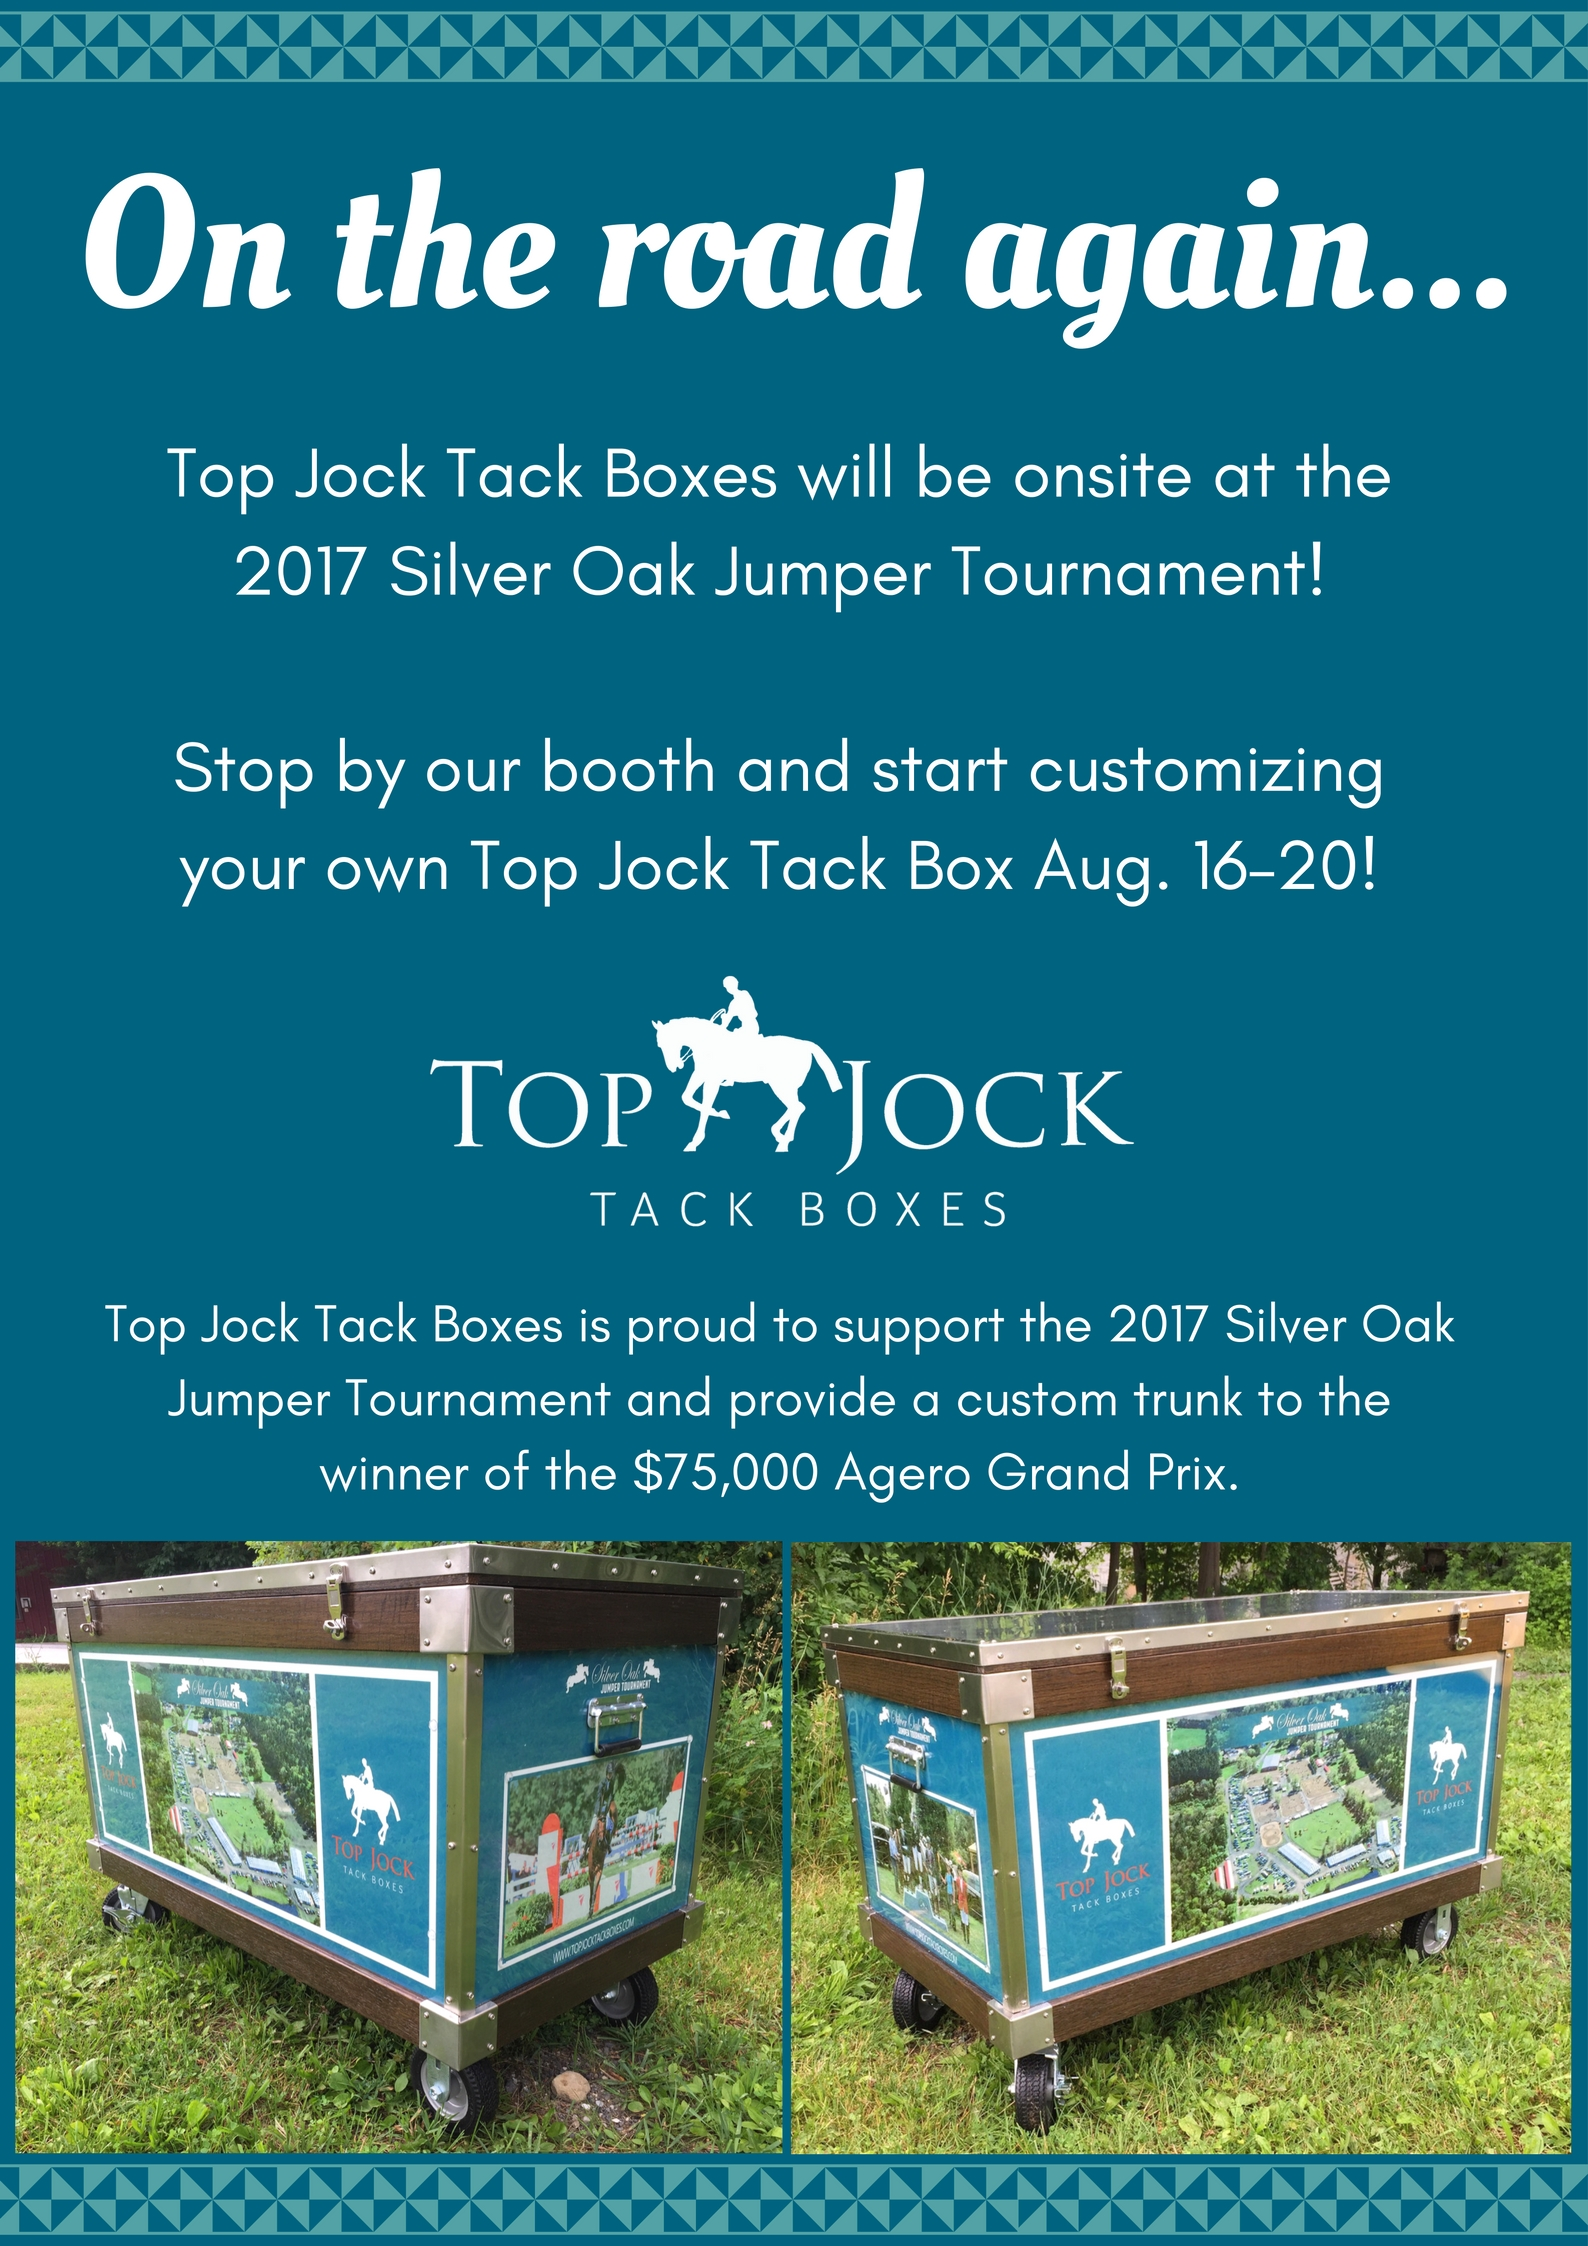 Top Jock Tack Boxes Heads to Silver Oak Jumper Tournament This Week!